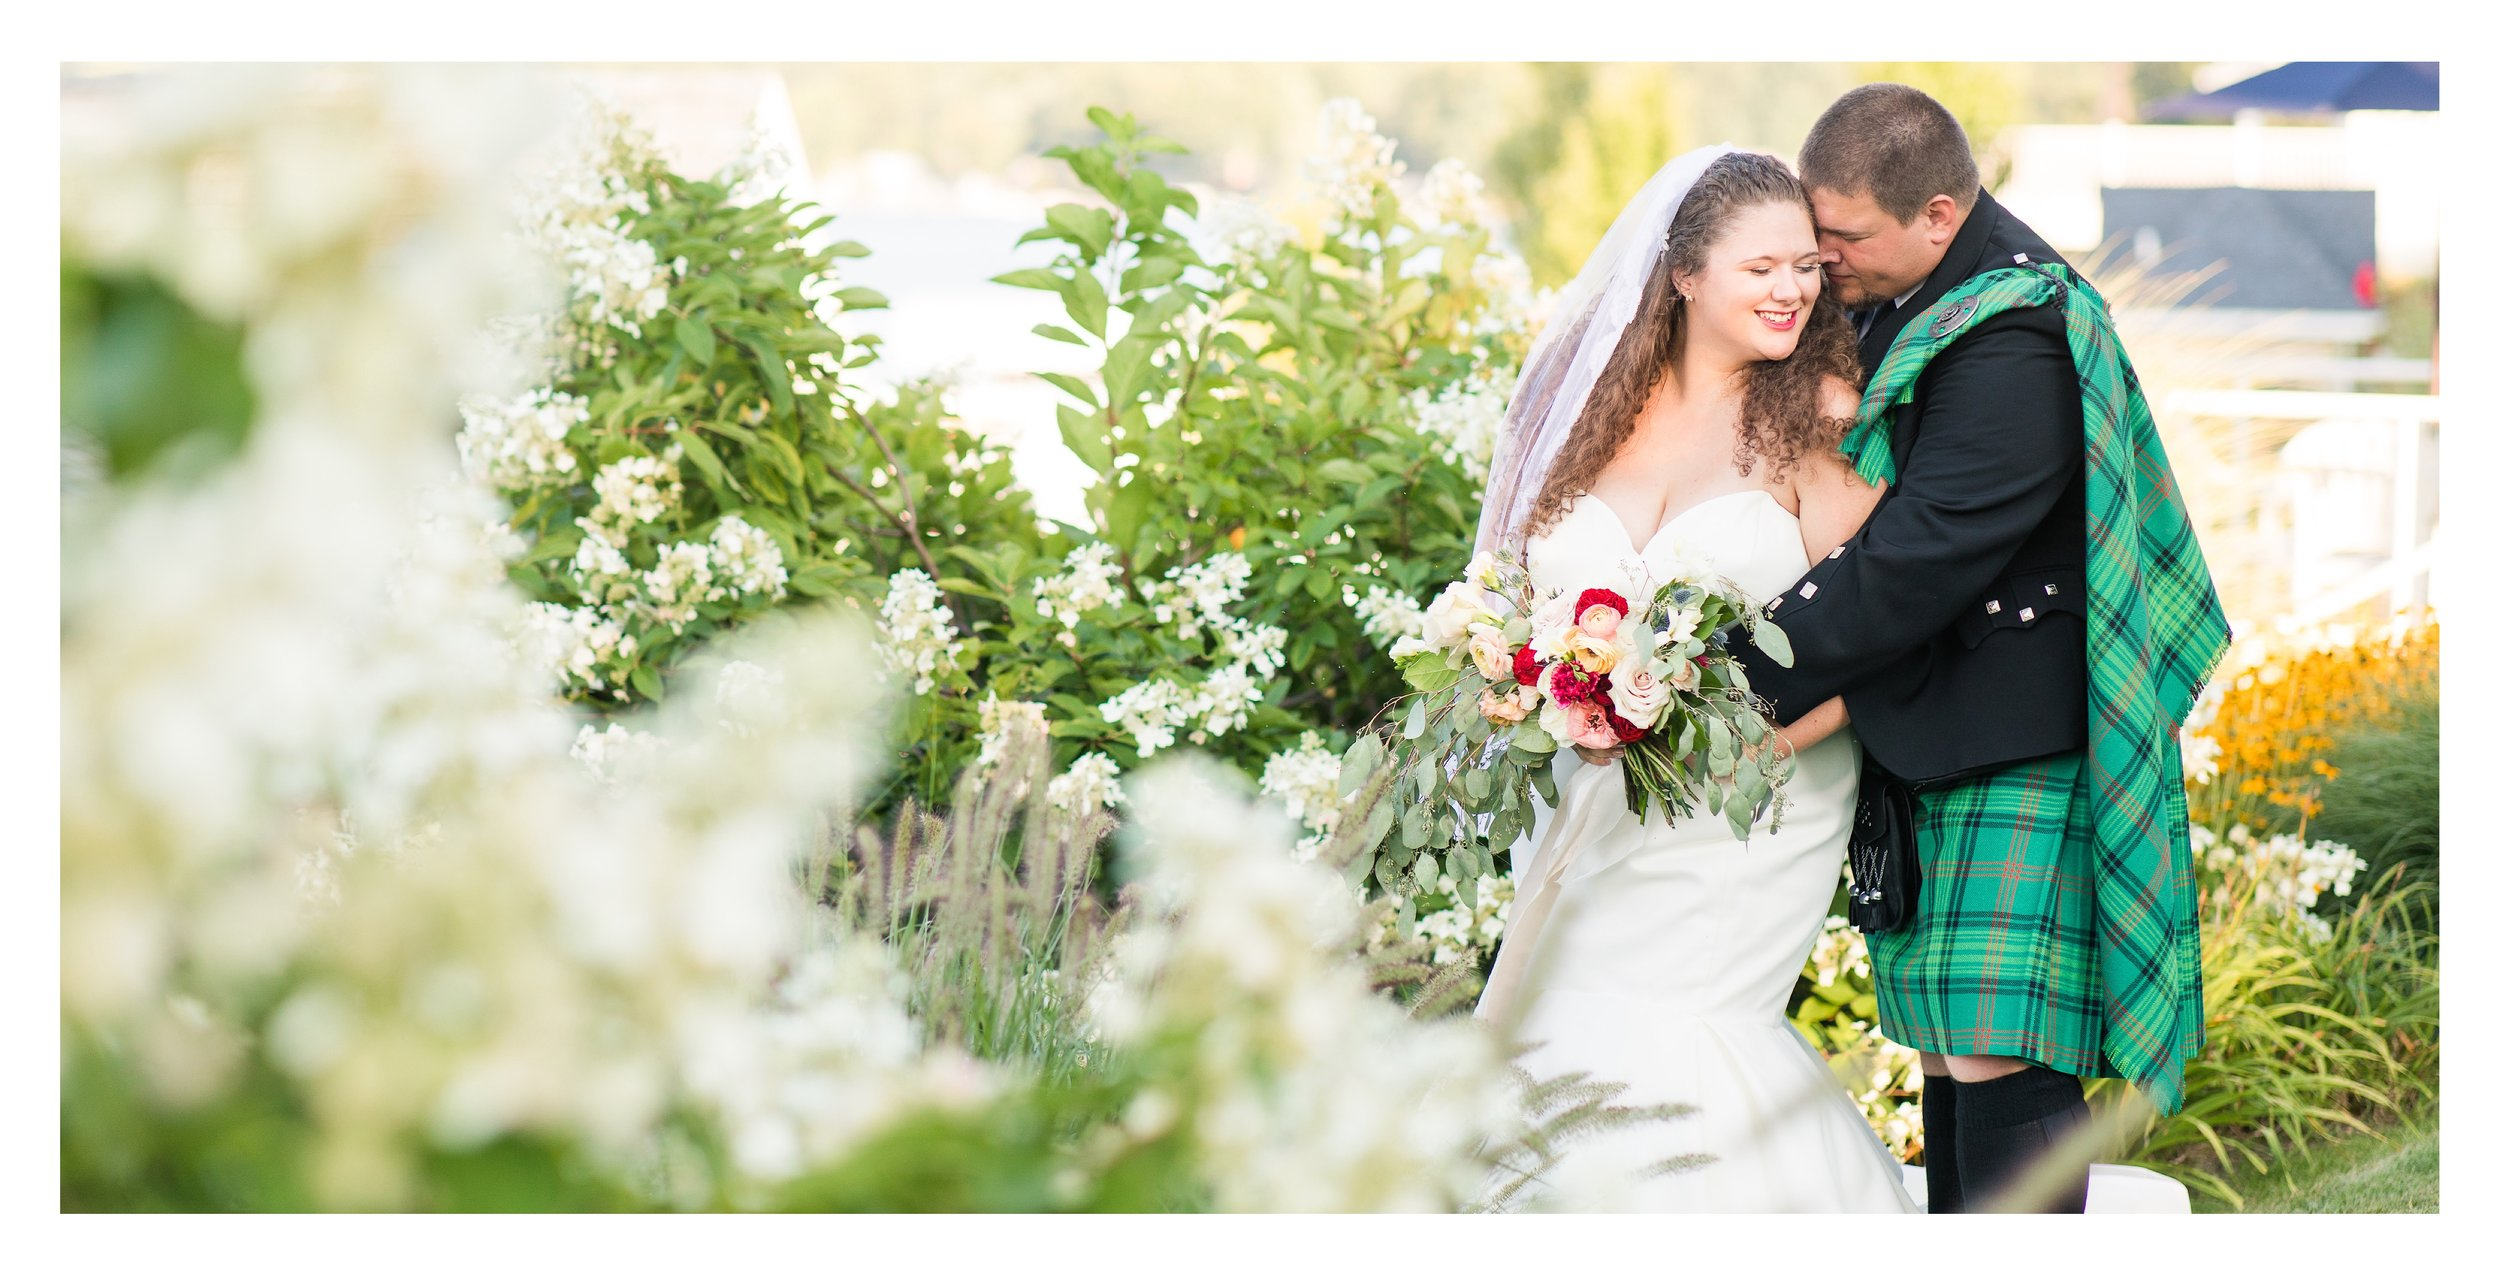 Our_Wedding_Album_12x12_-_30_pages_30.jpg